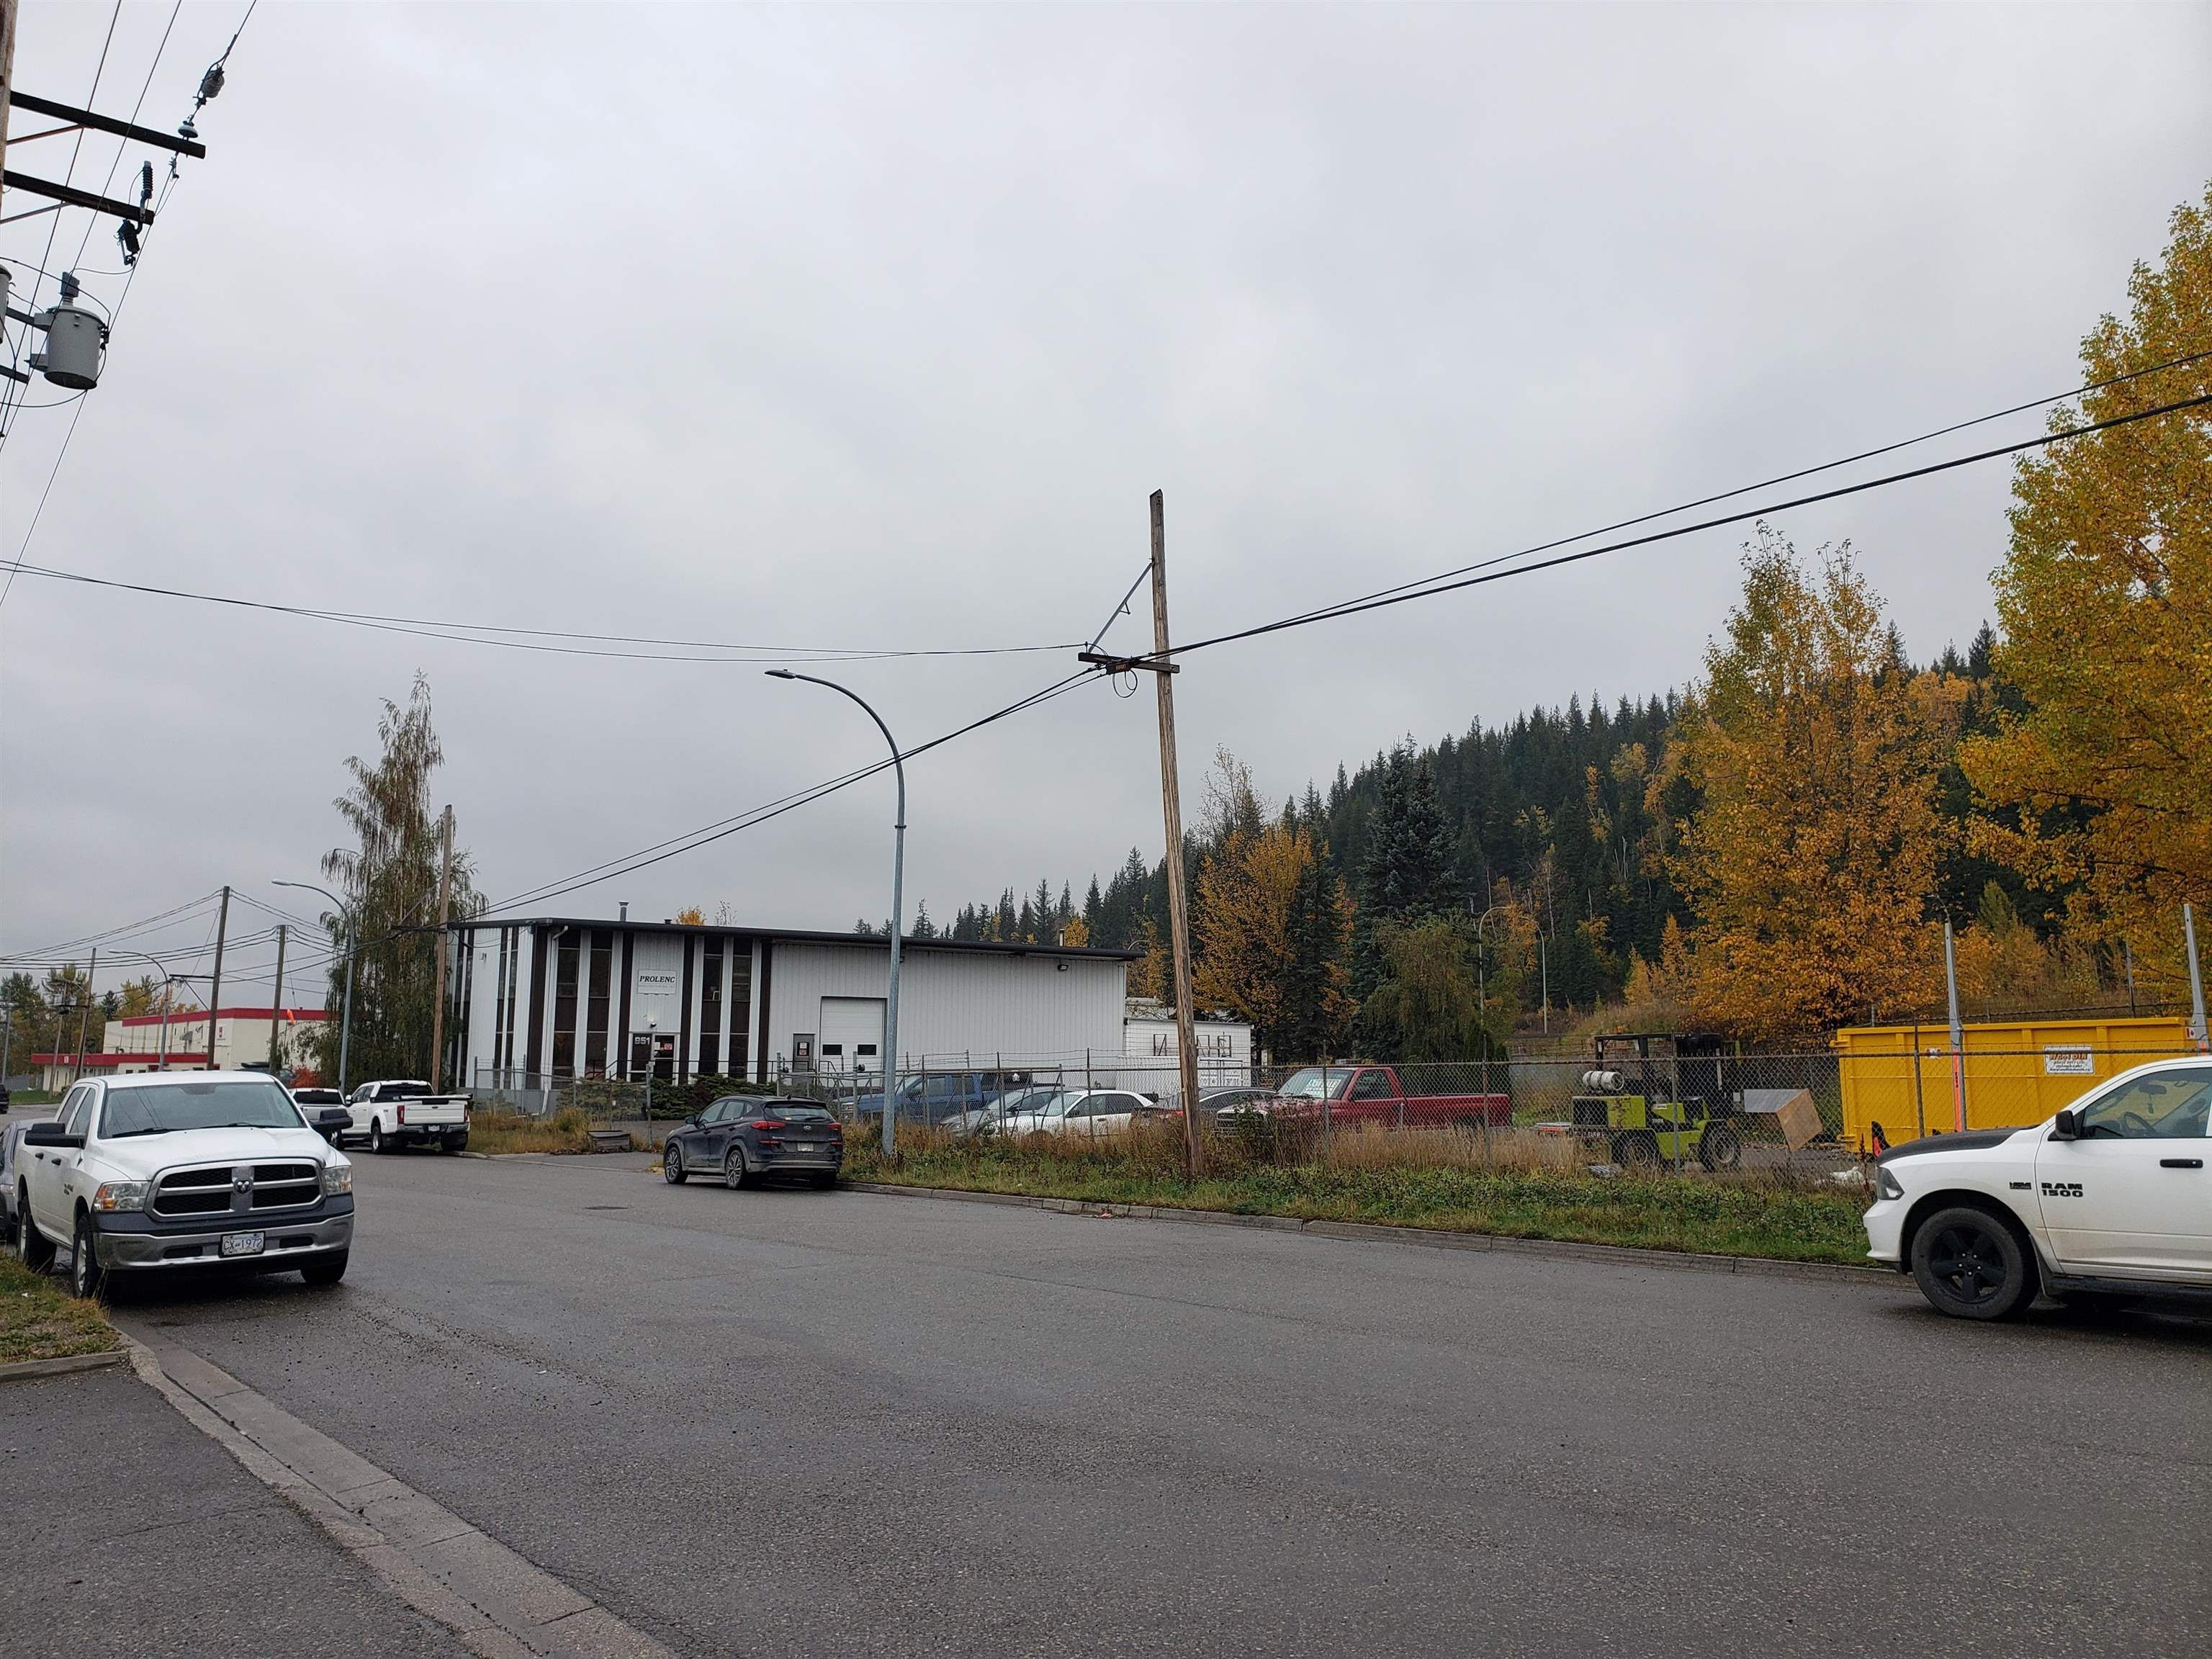 Main Photo: 951 GREAT Street in Prince George: BCR Industrial Industrial for sale (PG City South East (Zone 75))  : MLS®# C8040554